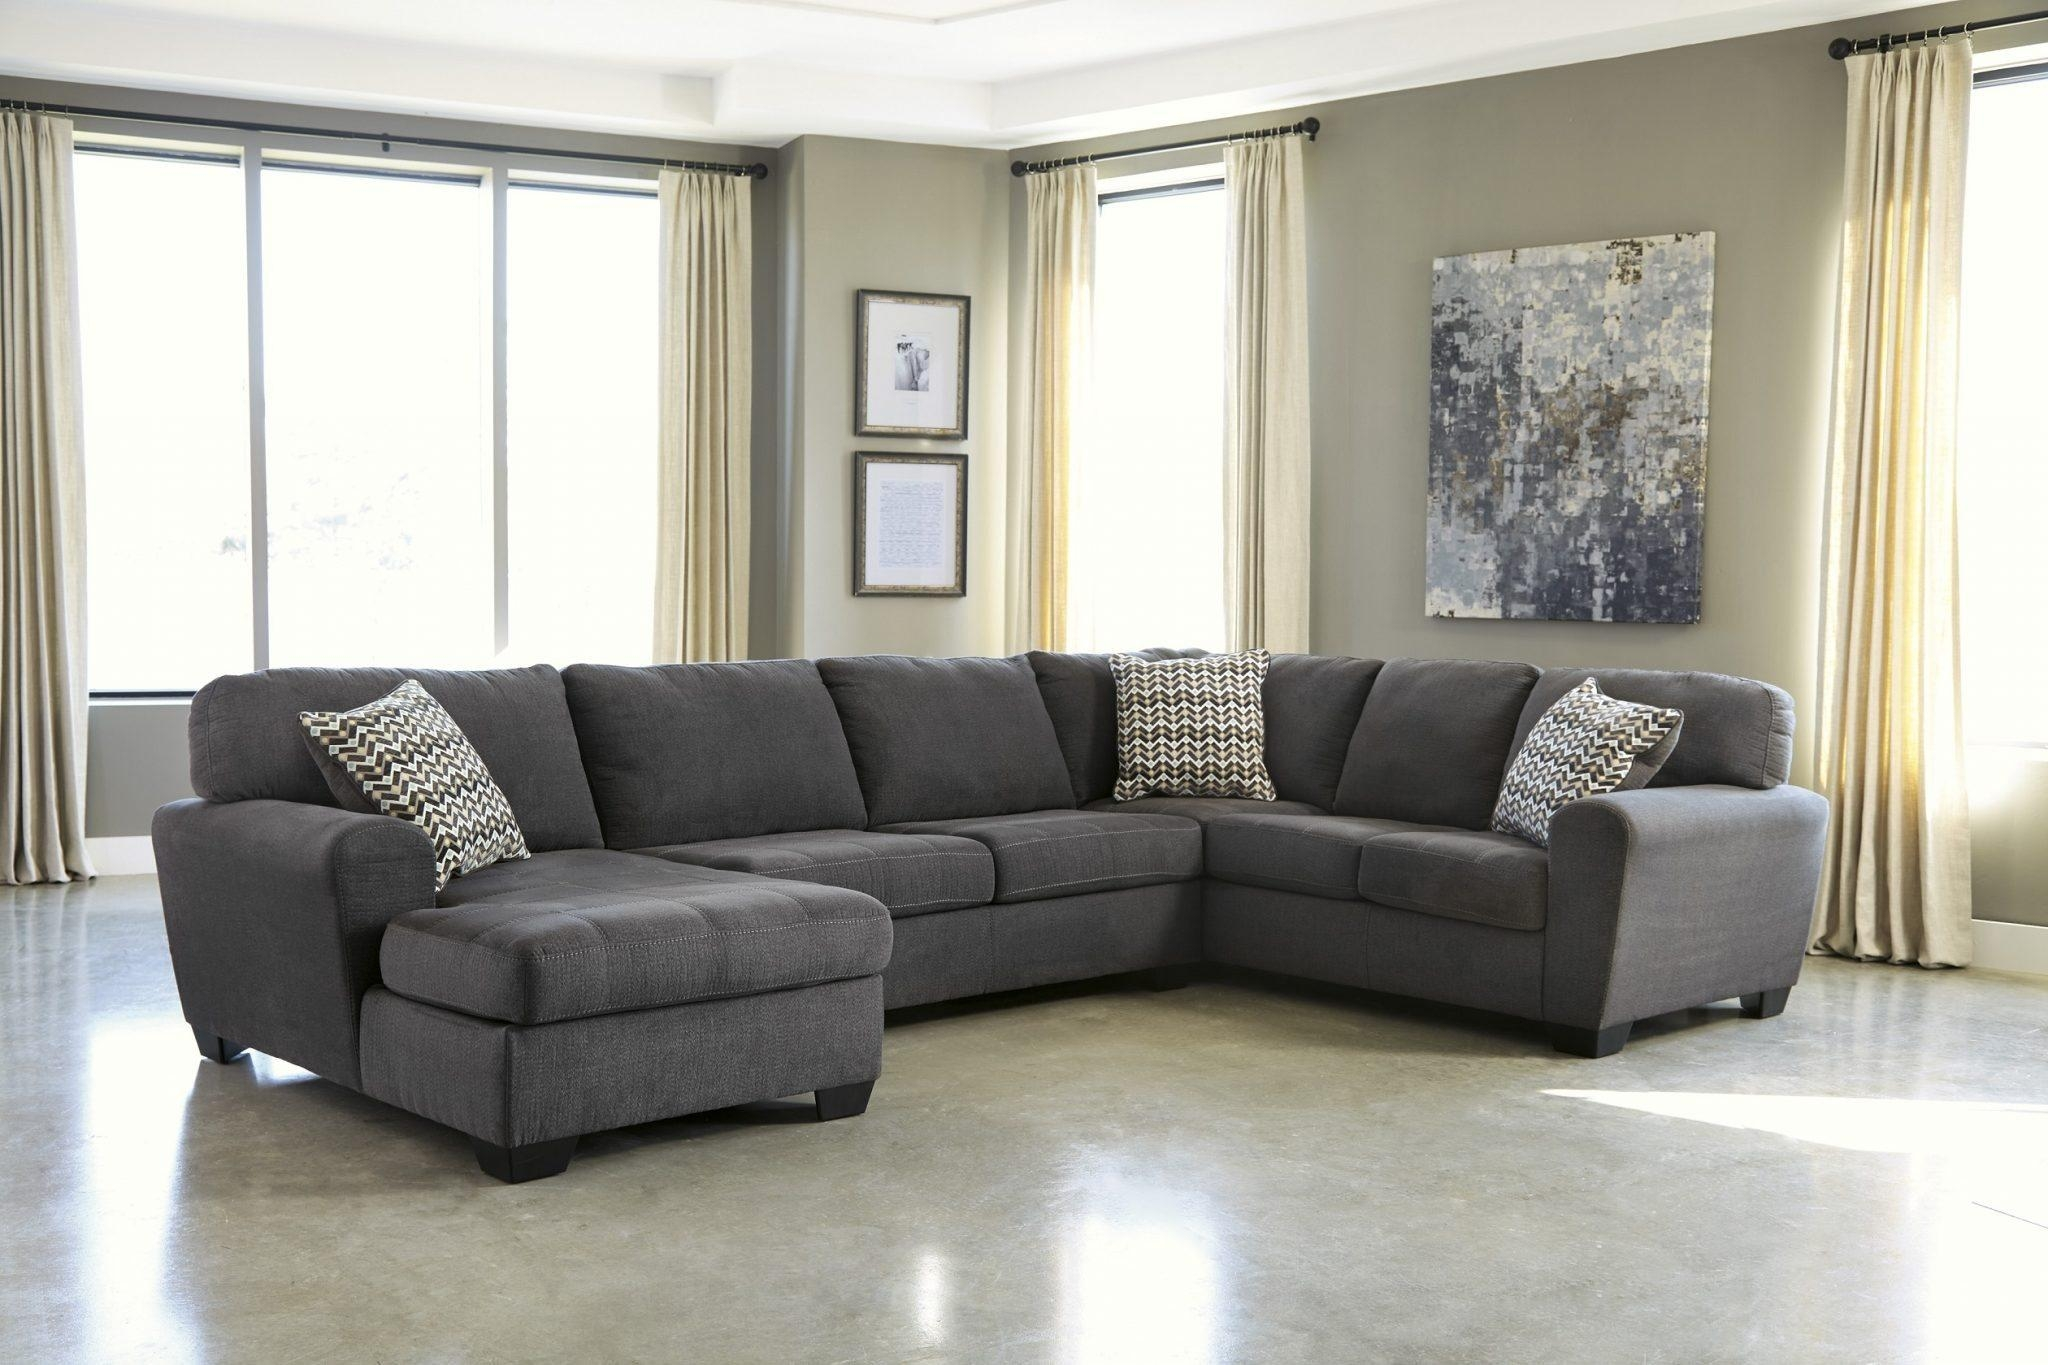 Chair & Sofa: Have An Interesting Living Room With Ashley Pertaining To Ashley Curved Sectional (View 15 of 15)